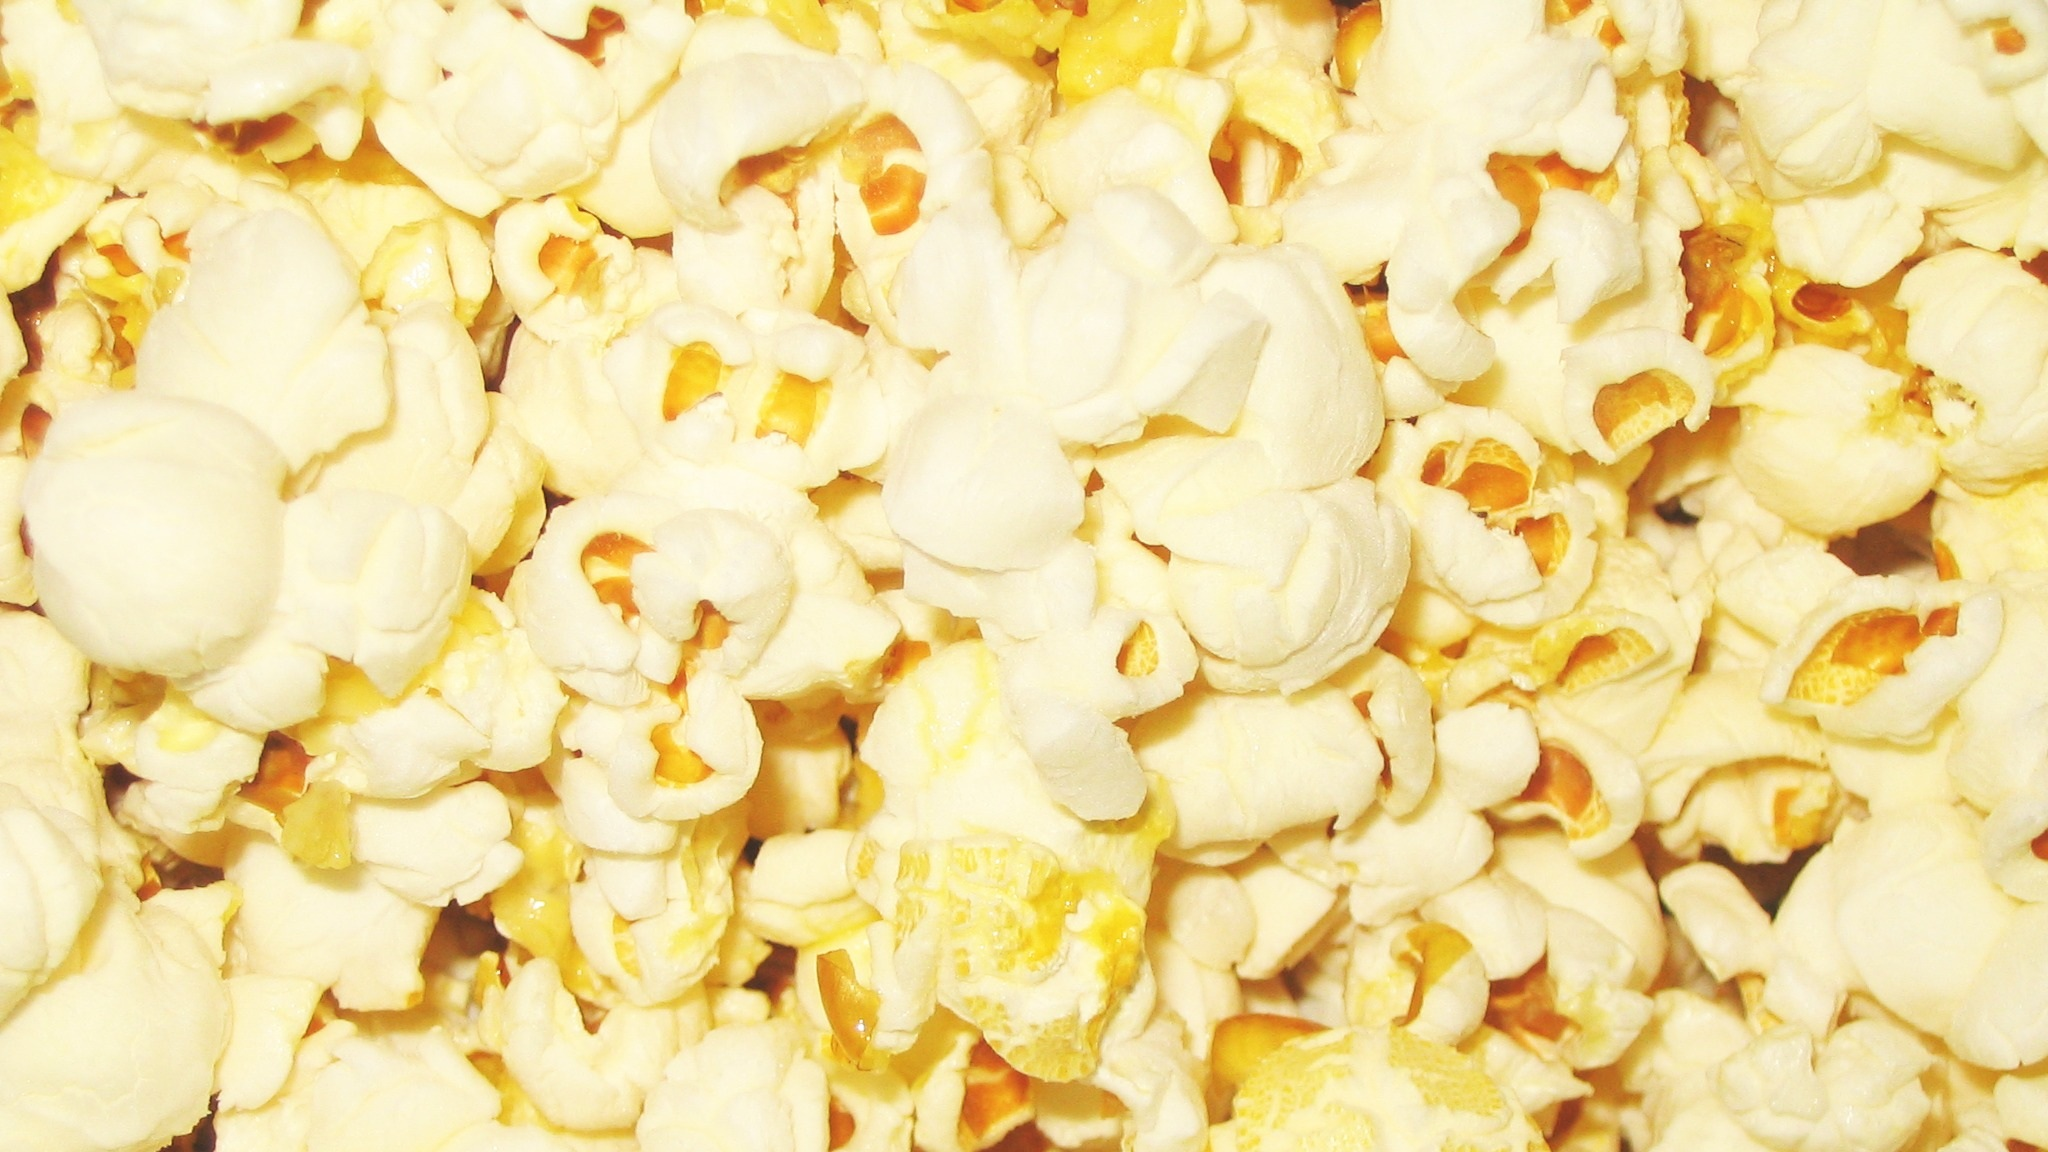 popcorn up close hd wallpaper 66876